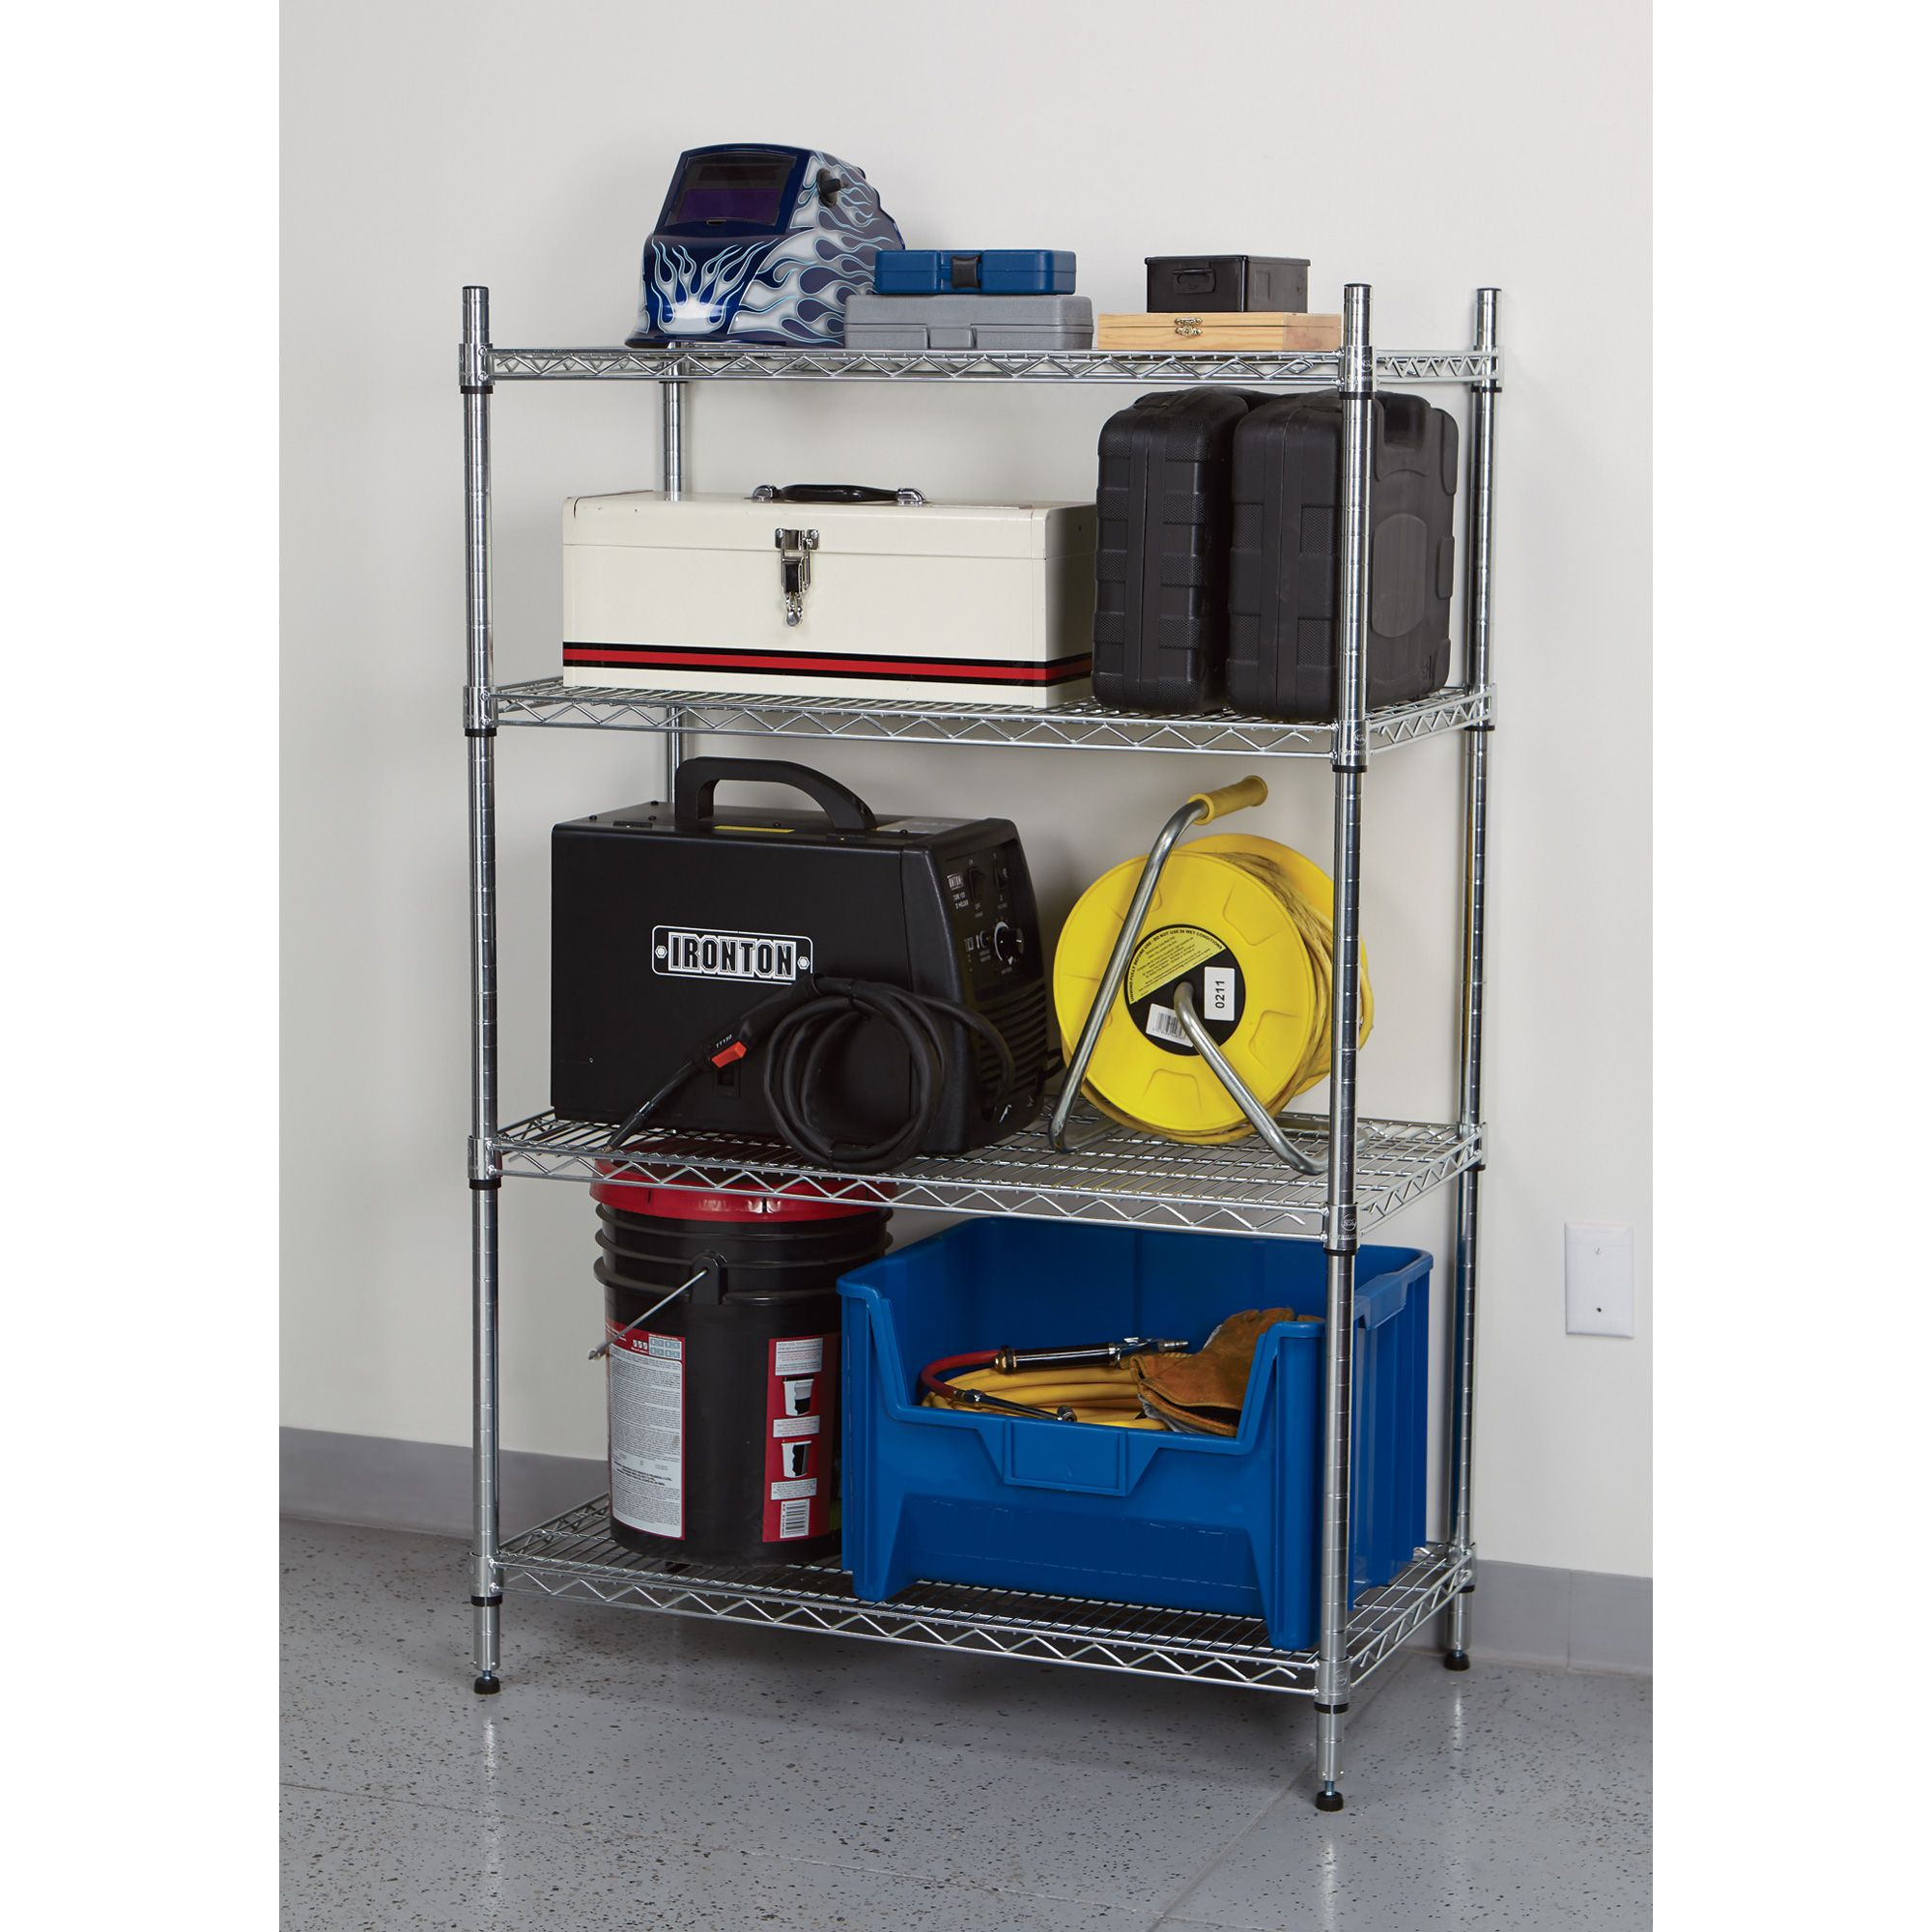 Strongway Heavy-duty Wire Shelving System — 4 Shelves, 800